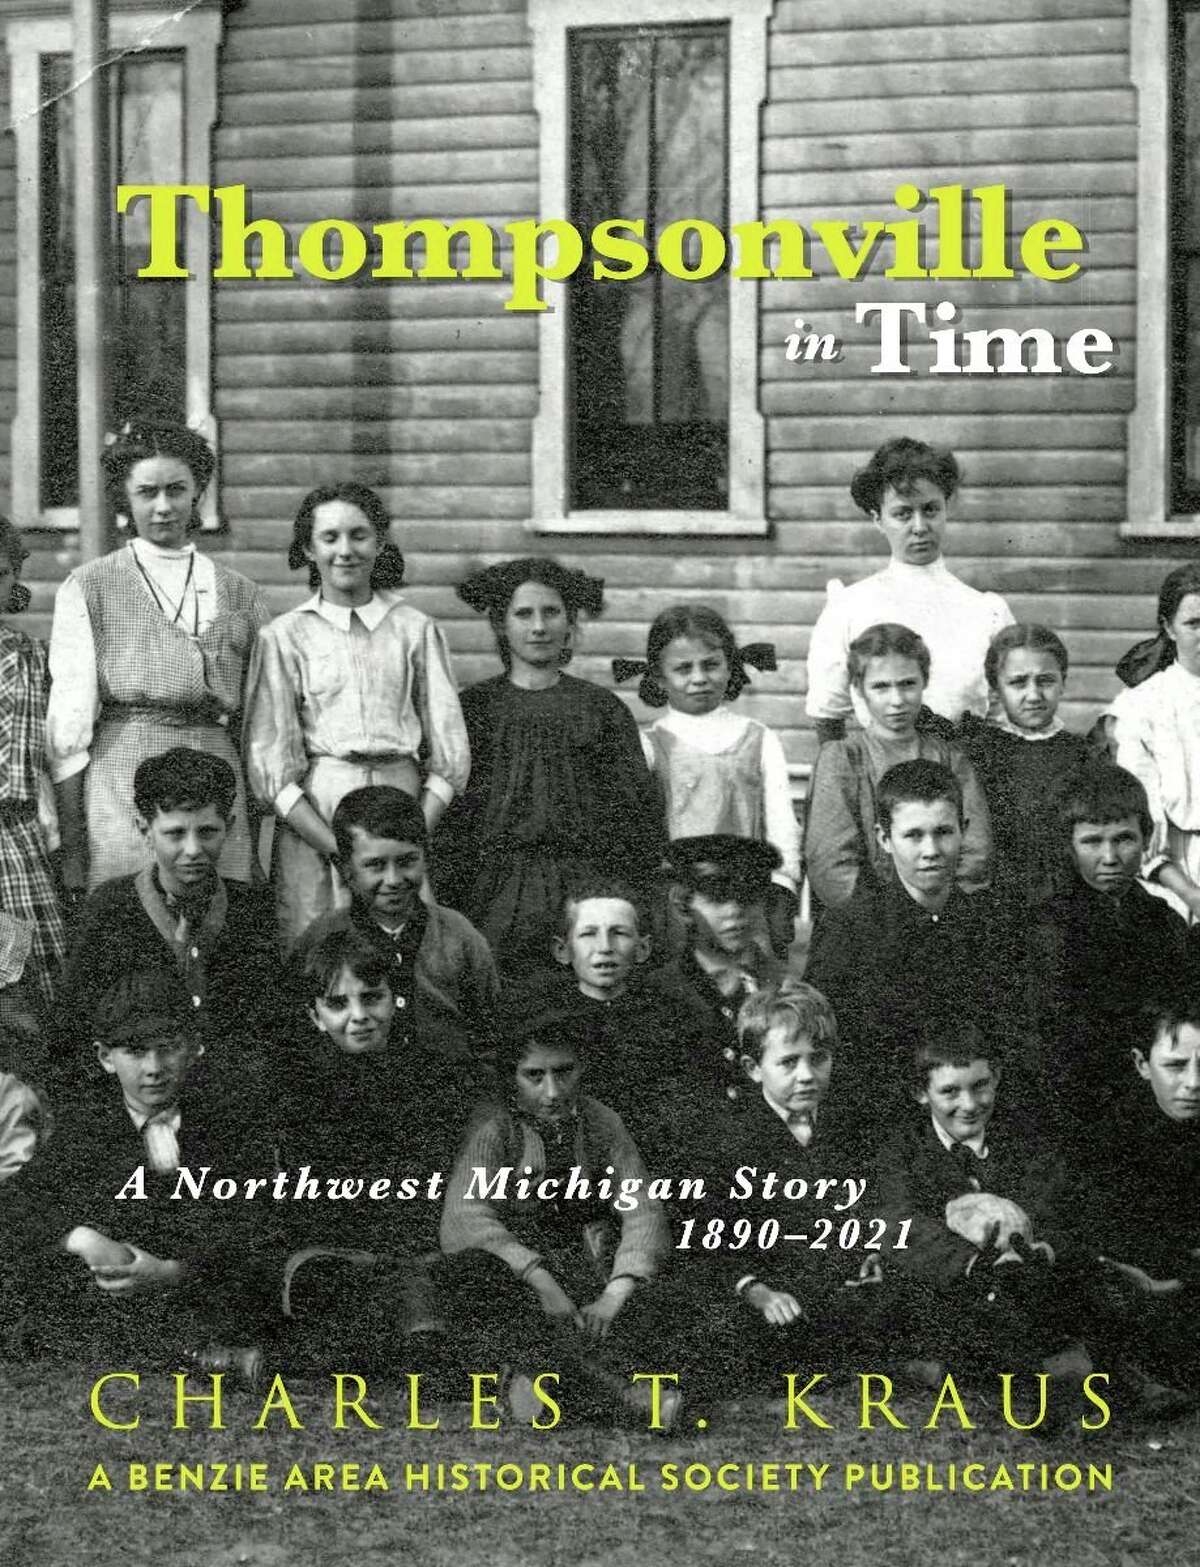 """An official launch for """"Thompsonville in Time"""" by Charles T. Kraus will take place at the Benzie Area Historical Society's annual meeting on Sept.29, beginning with a reception at 6:30 p.m.at Crystal Mountain Resort.(Courtesy photo)"""